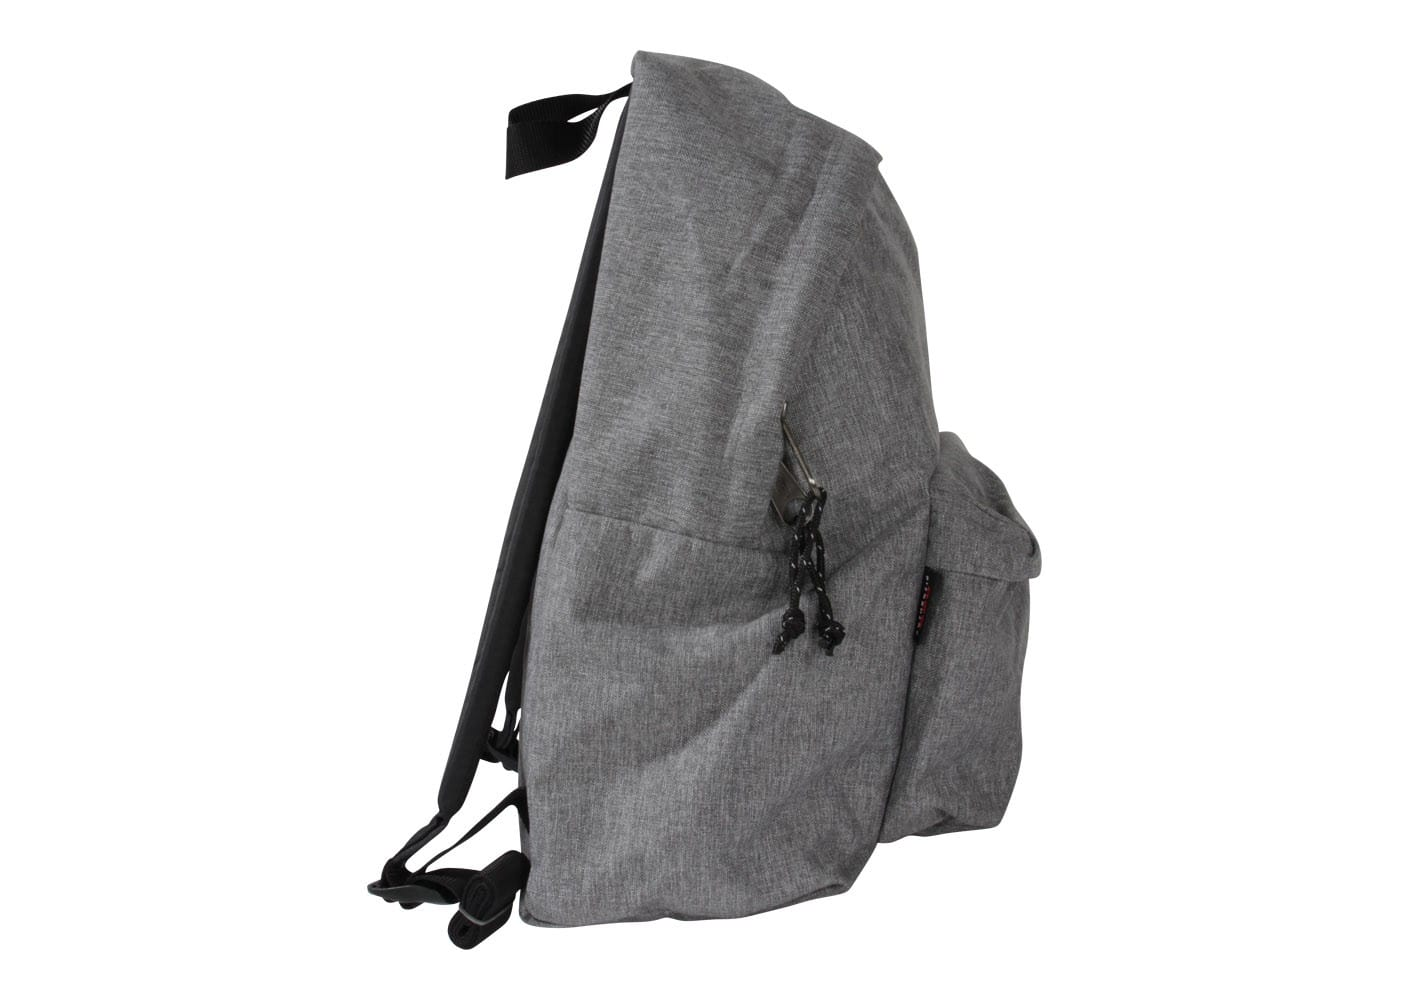 eastpak sac dos padded pak 39 r gris sacs sacoches chausport. Black Bedroom Furniture Sets. Home Design Ideas